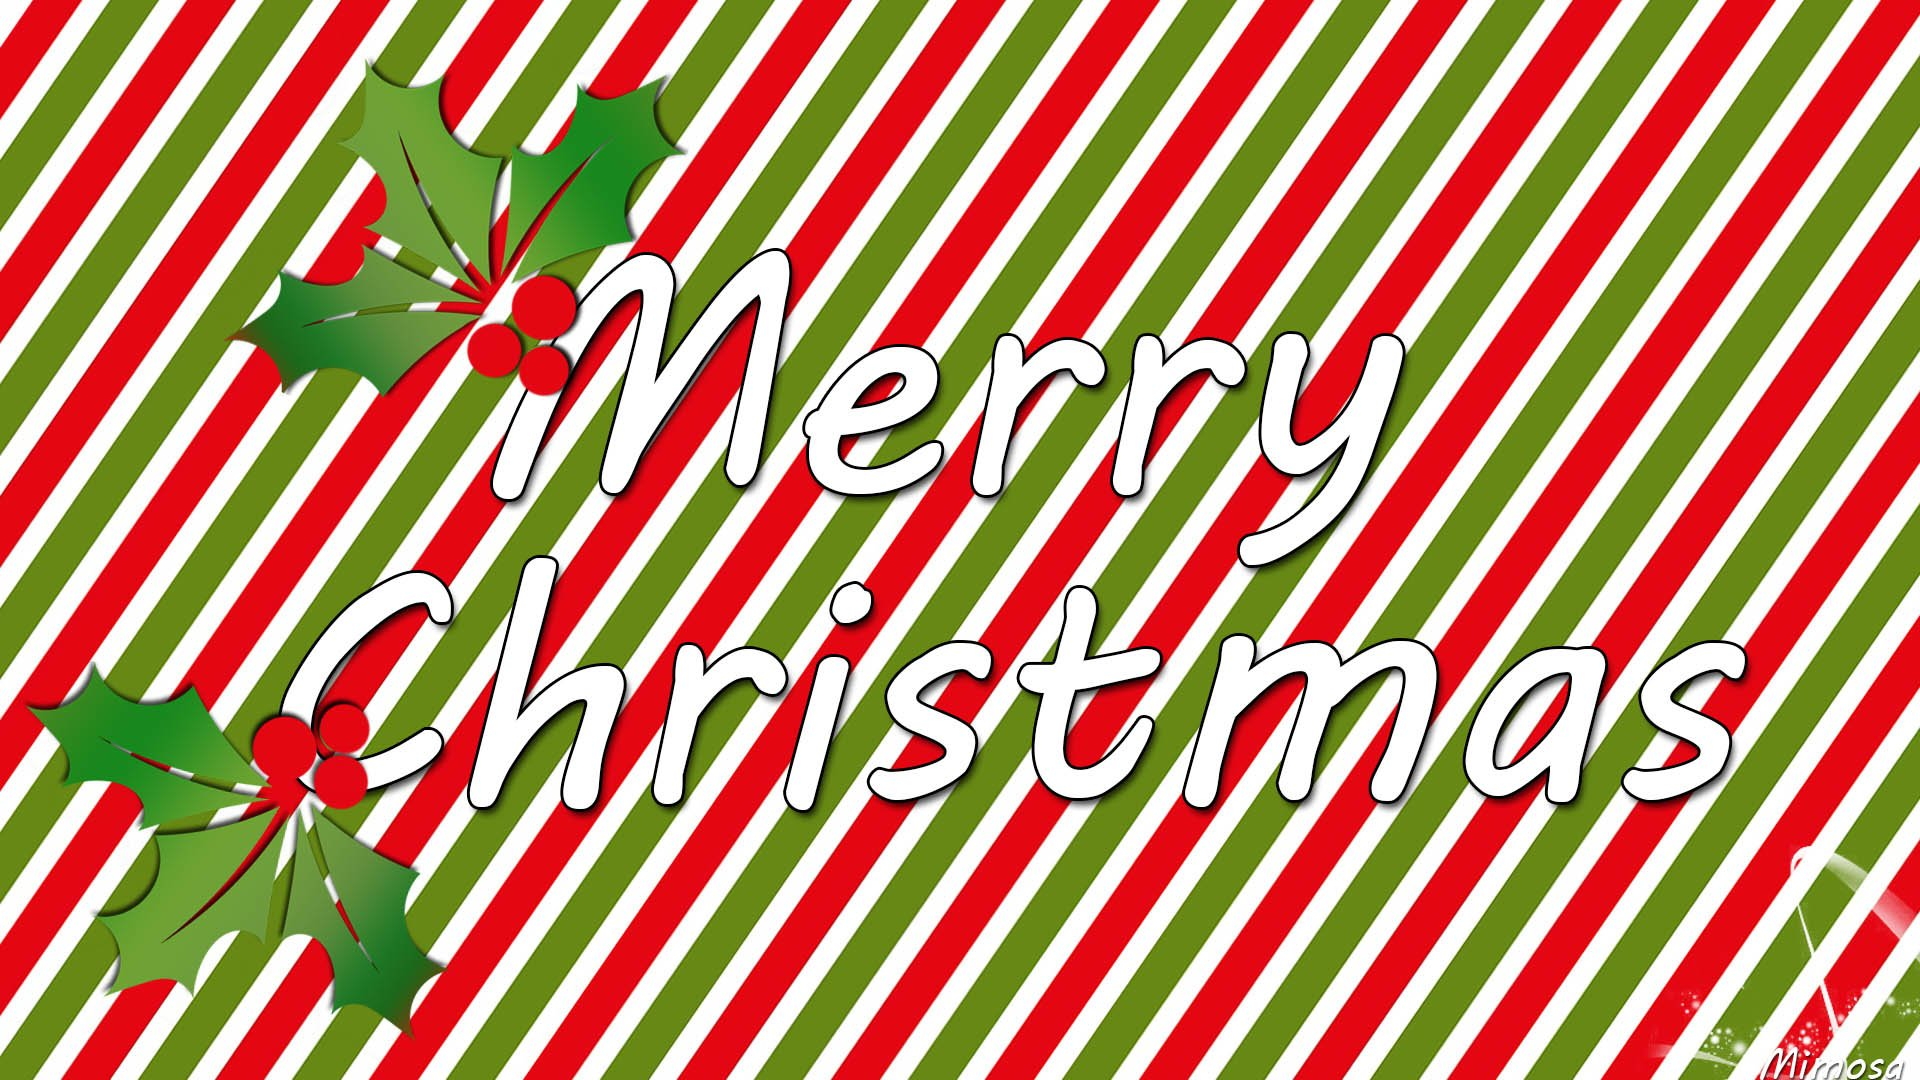 Merry Christmas 9 Hd Wallpaper Background Image 1920x1080